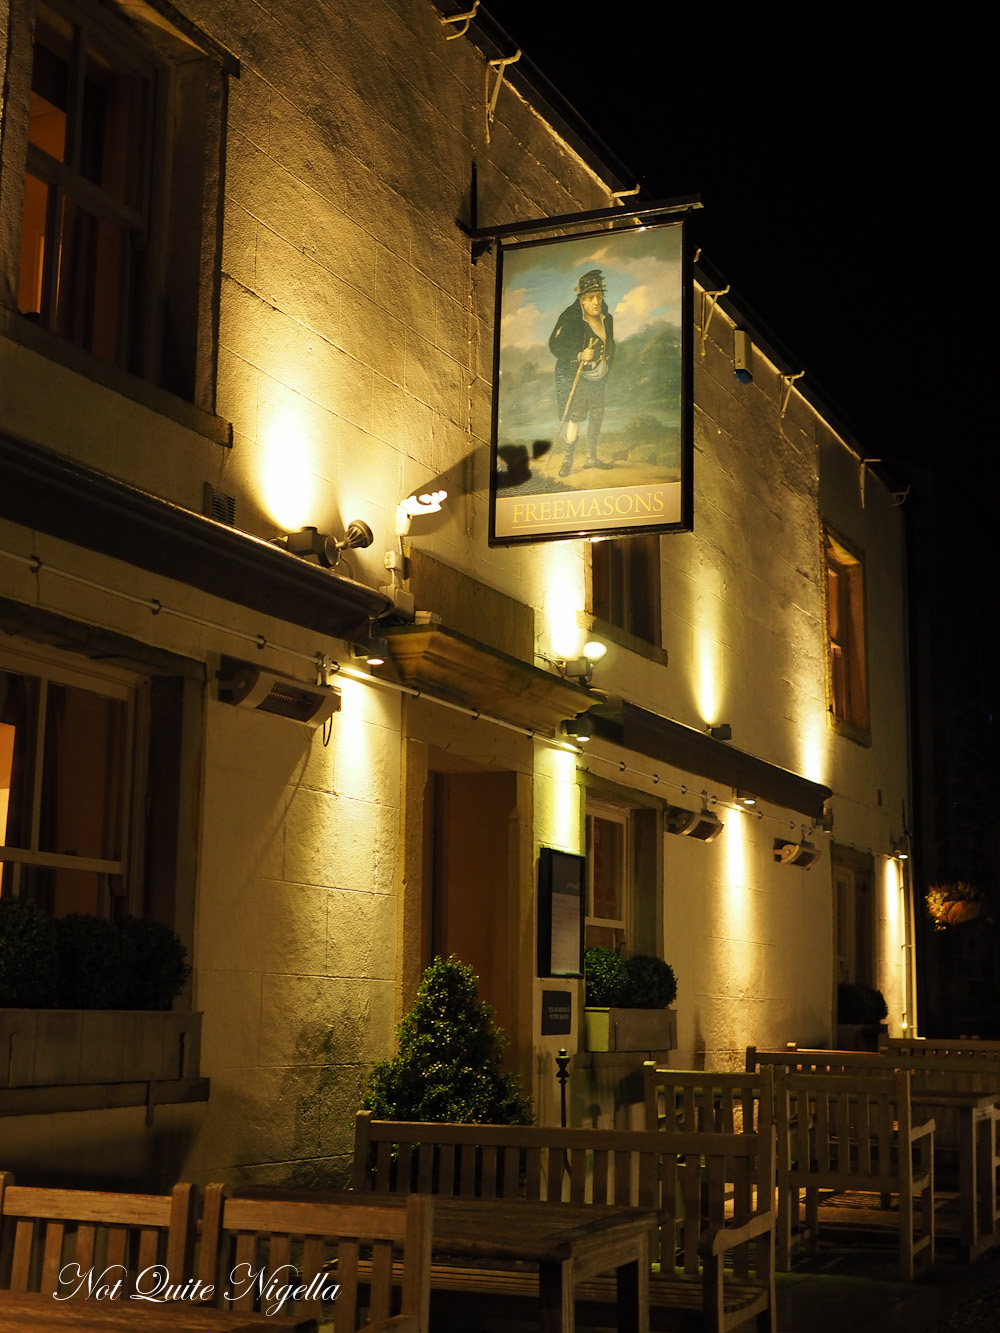 Inn at Whitewell Freesmasons at Wiswell Devonshire Arms